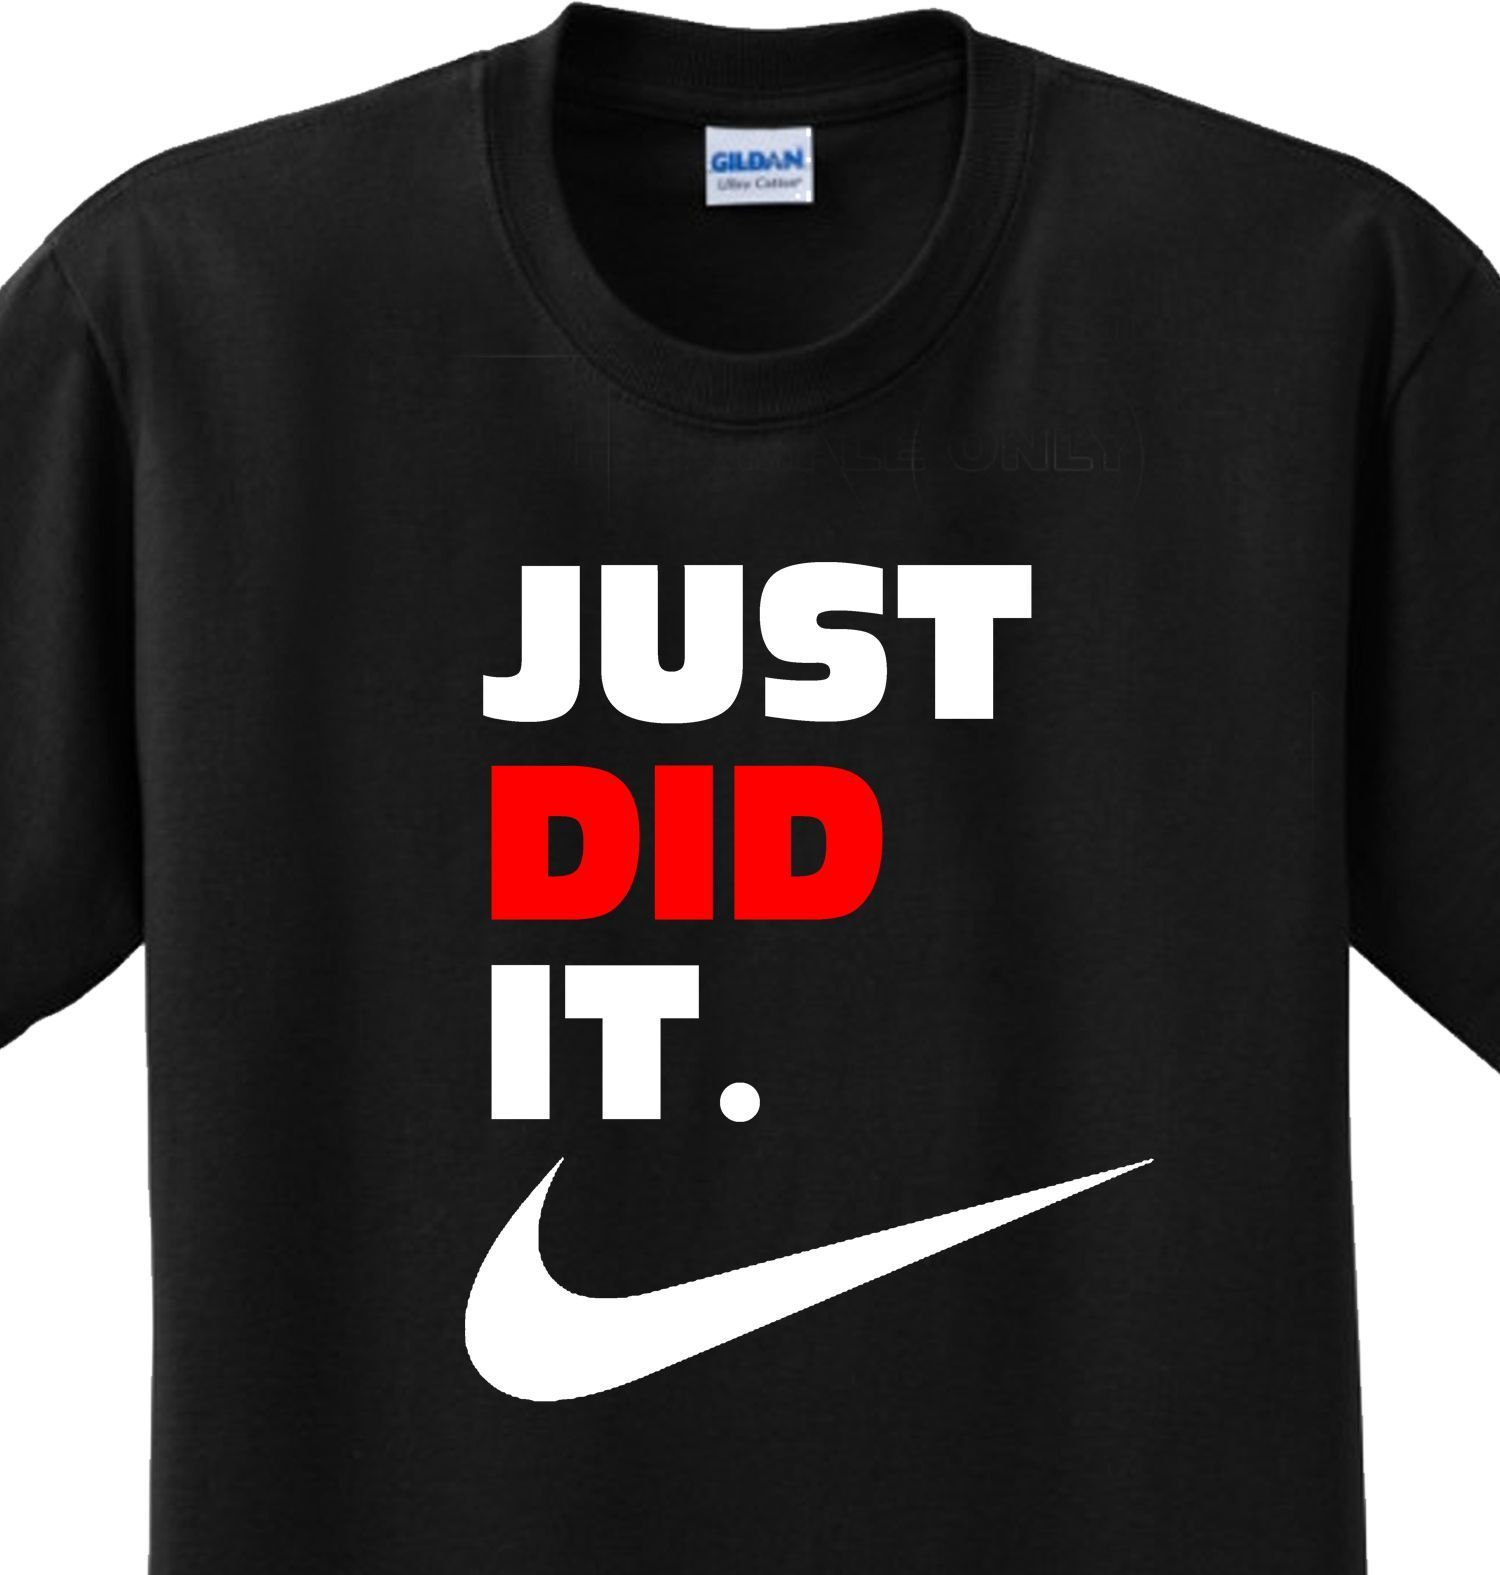 Nike Slogan Shirts Saying Nike Slogan Spoof